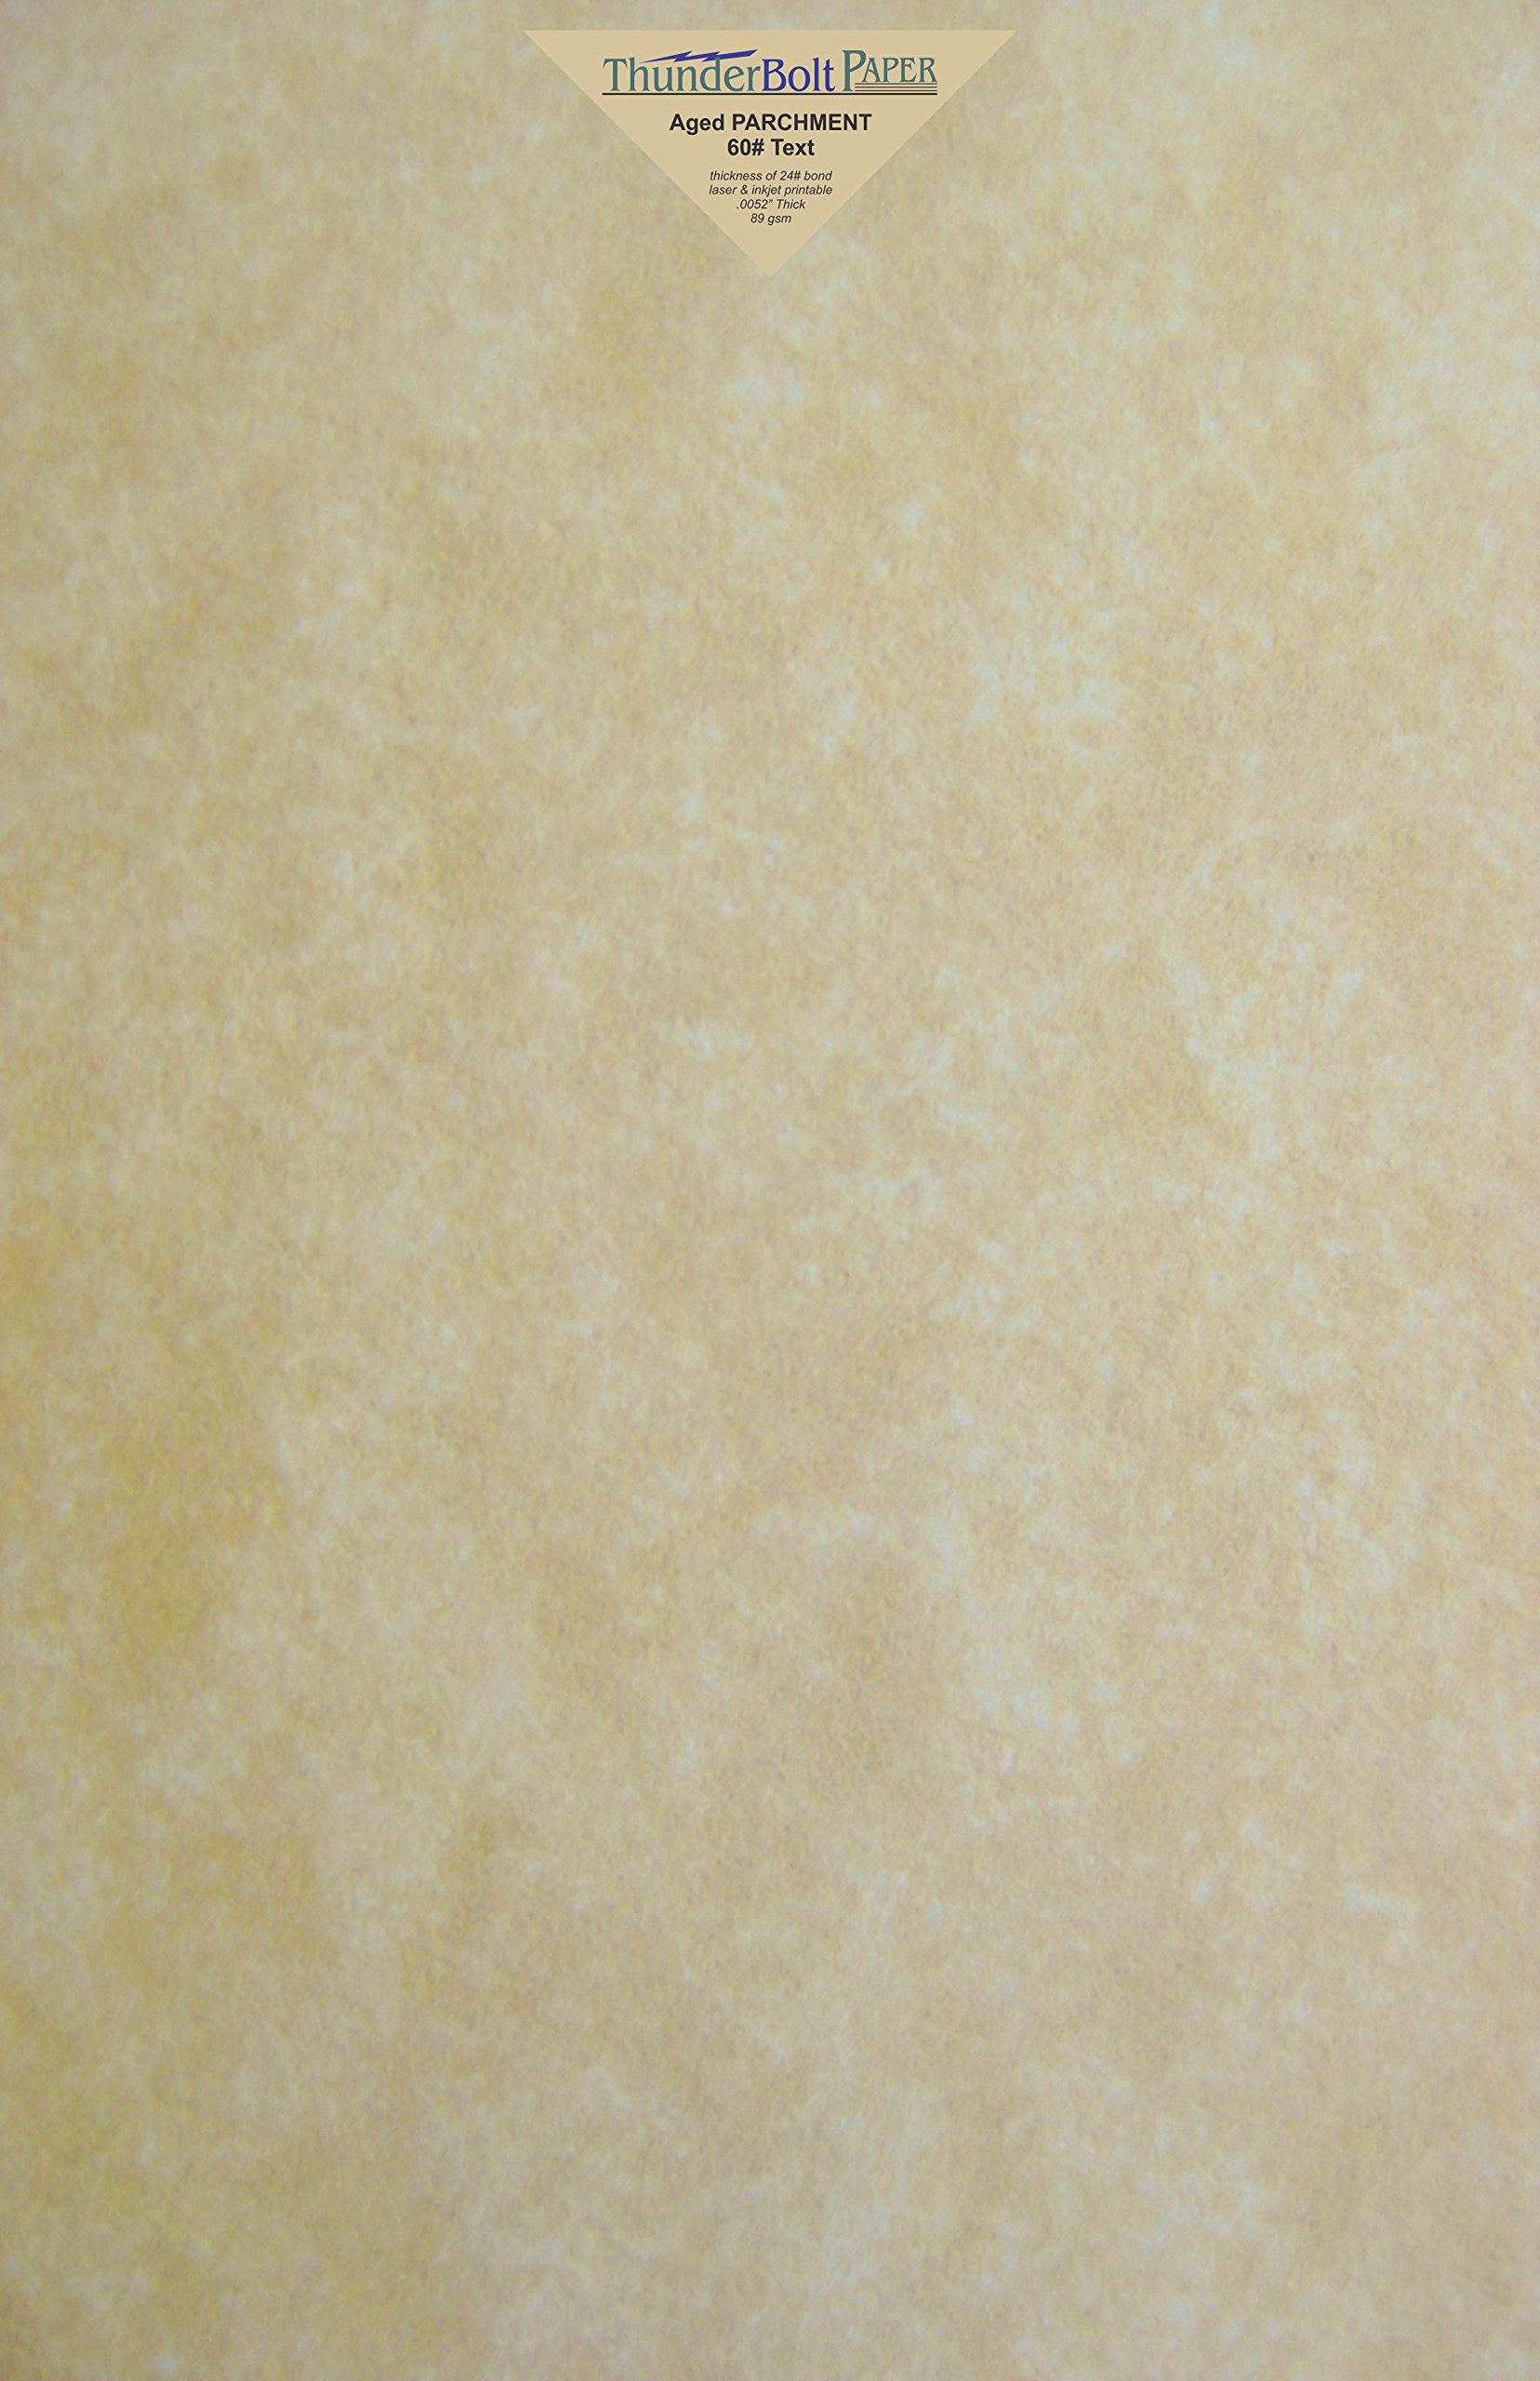 700 Old Age Parchment 60# Text (=24# Bond) Paper Sheets - 11'' X 17'' (11X17 Inches) Tabloid|Ledger|Booklet Size - 60 Pound is Not Card Weight - Vintage Colored Old Parchment Semblance by ThunderBolt Paper